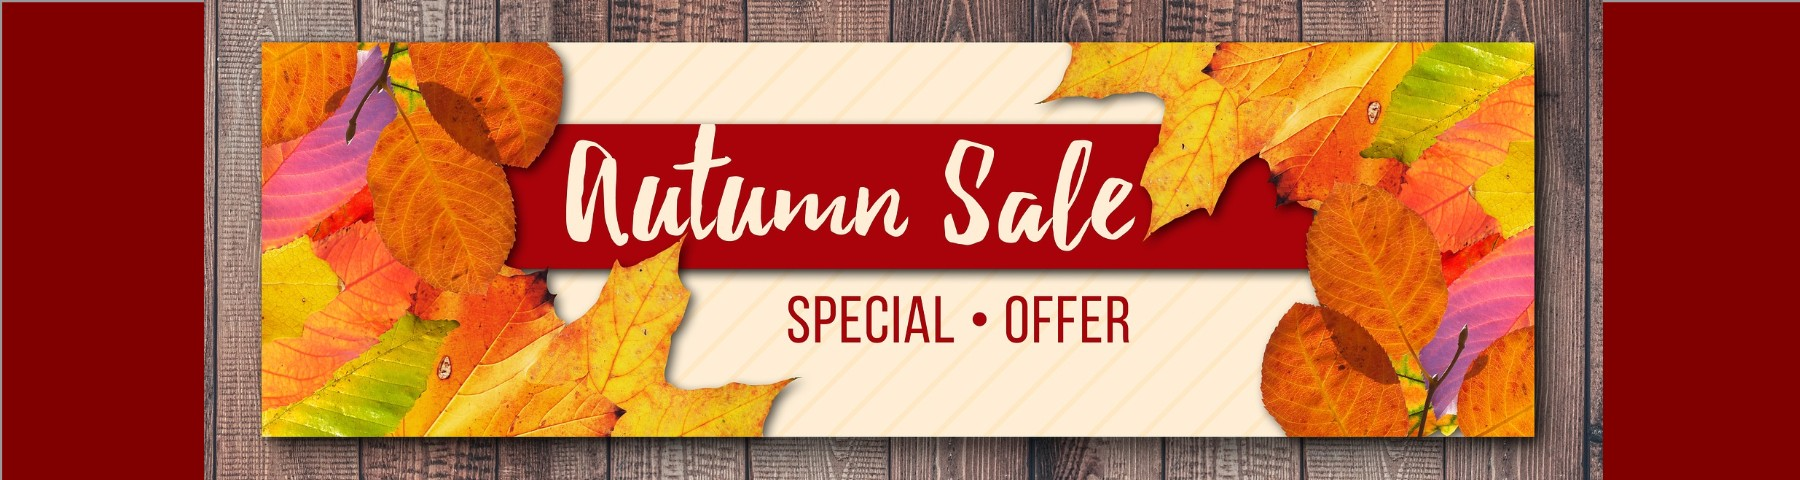 autumn-fall-sale.jpg